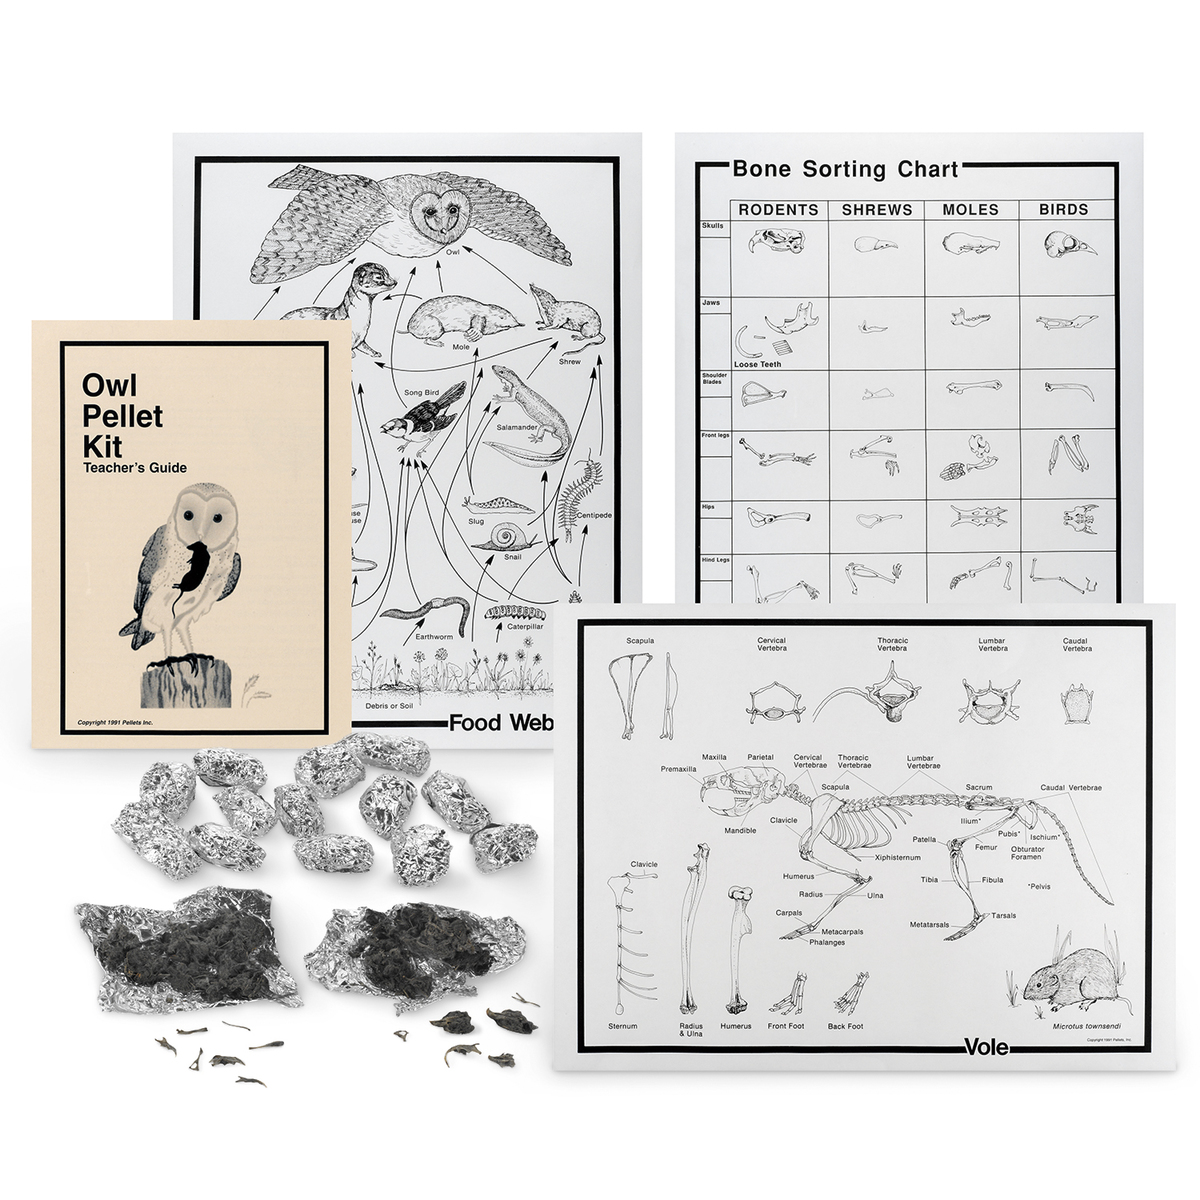 pack of 15 Extra-large barn owl pellets with bone sorting sheet